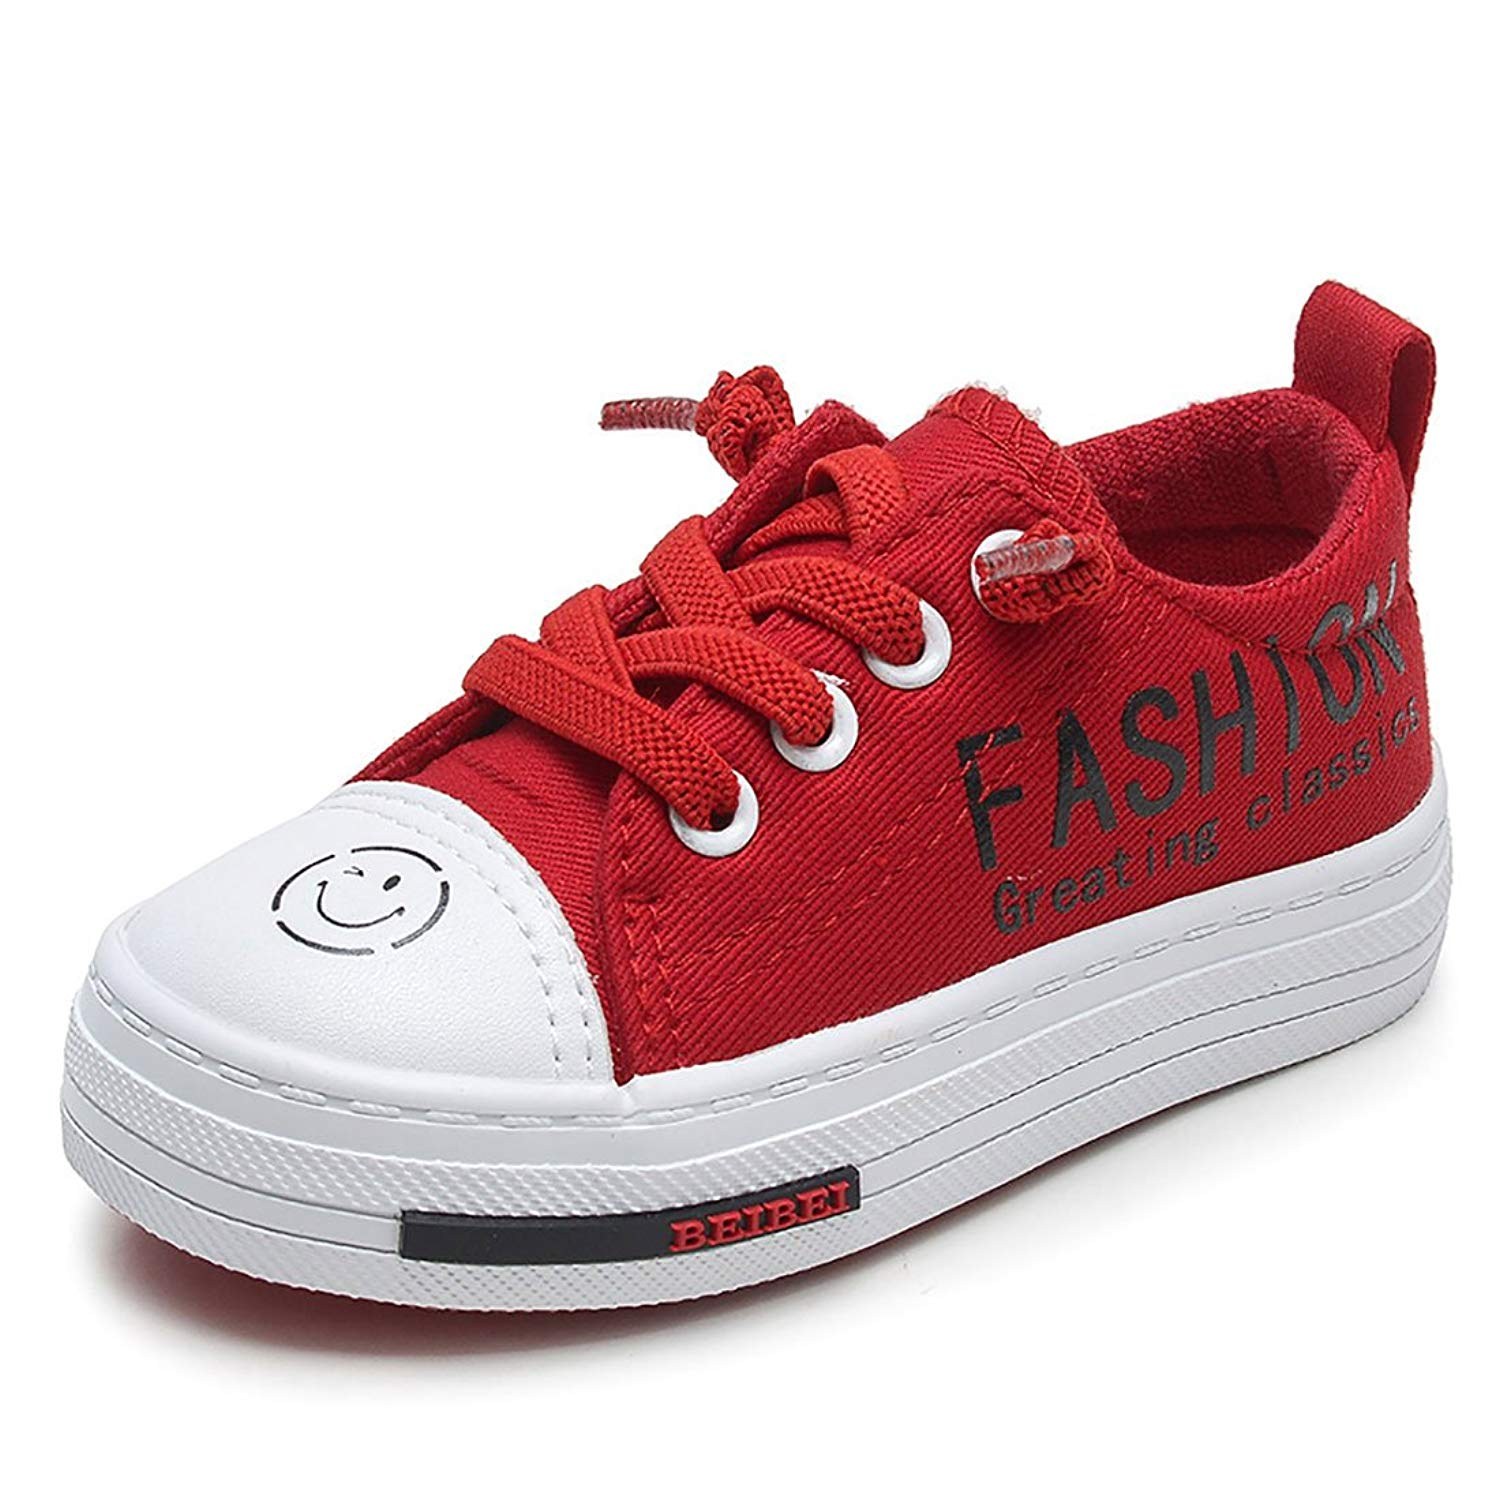 0978cd612bb Get Quotations · YIBLBOX Boys Girls Kids Lace Up Sneakers Toddlers Canvas Shoes  Plimsolls